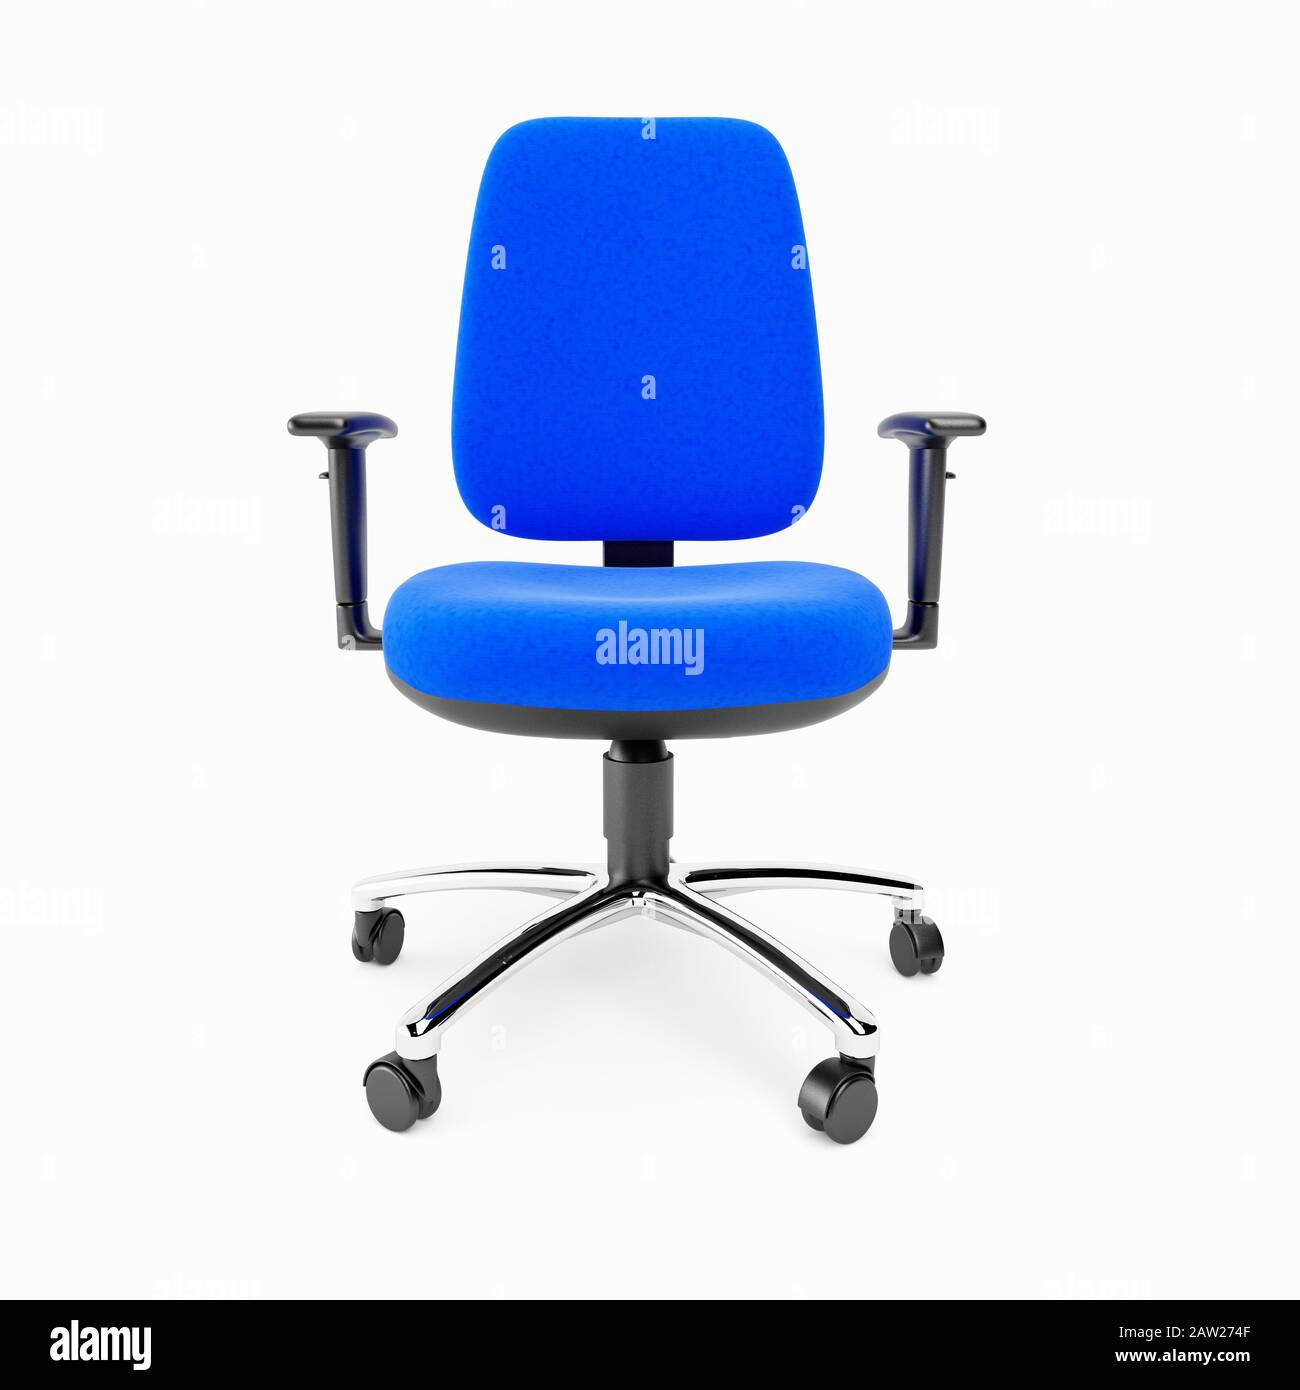 A Blue Basic Office Chair On A White Background Stock Photo Alamy